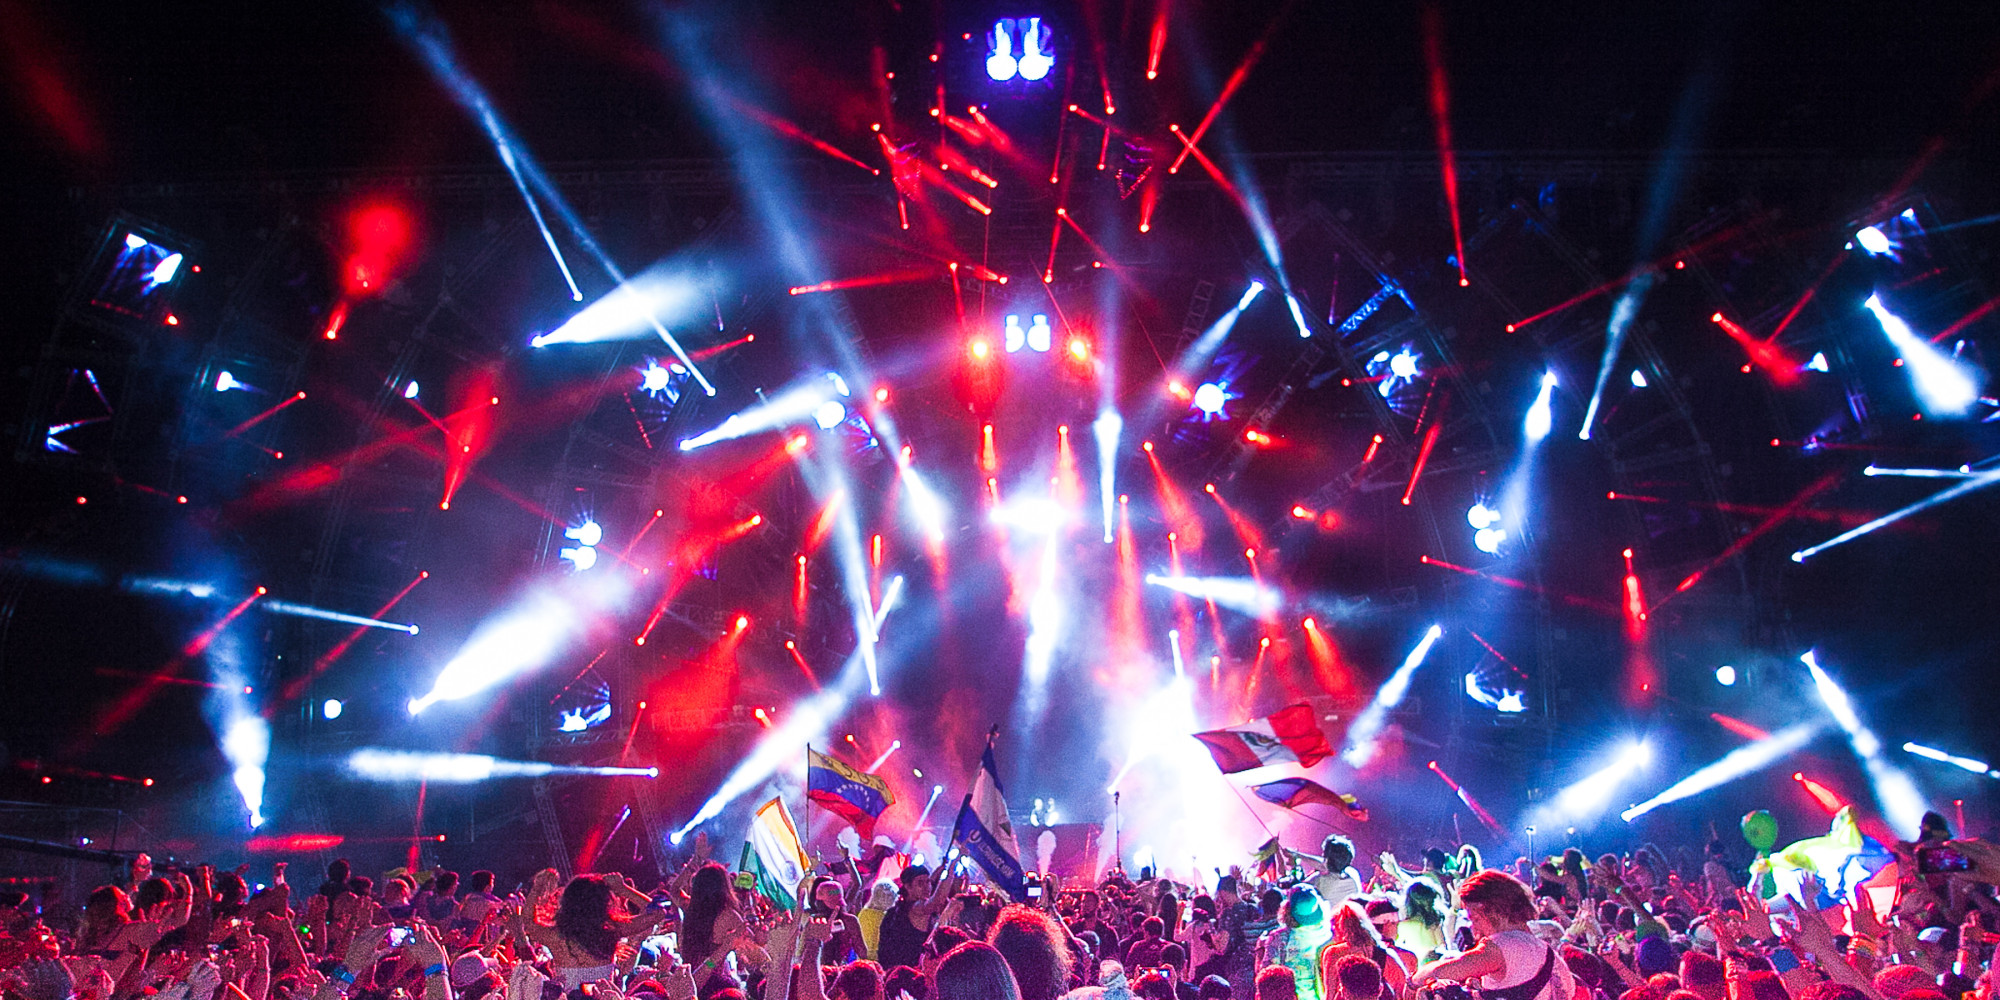 Go Inside Ultra Music Festival 2014 With These Giant Photos NSFW